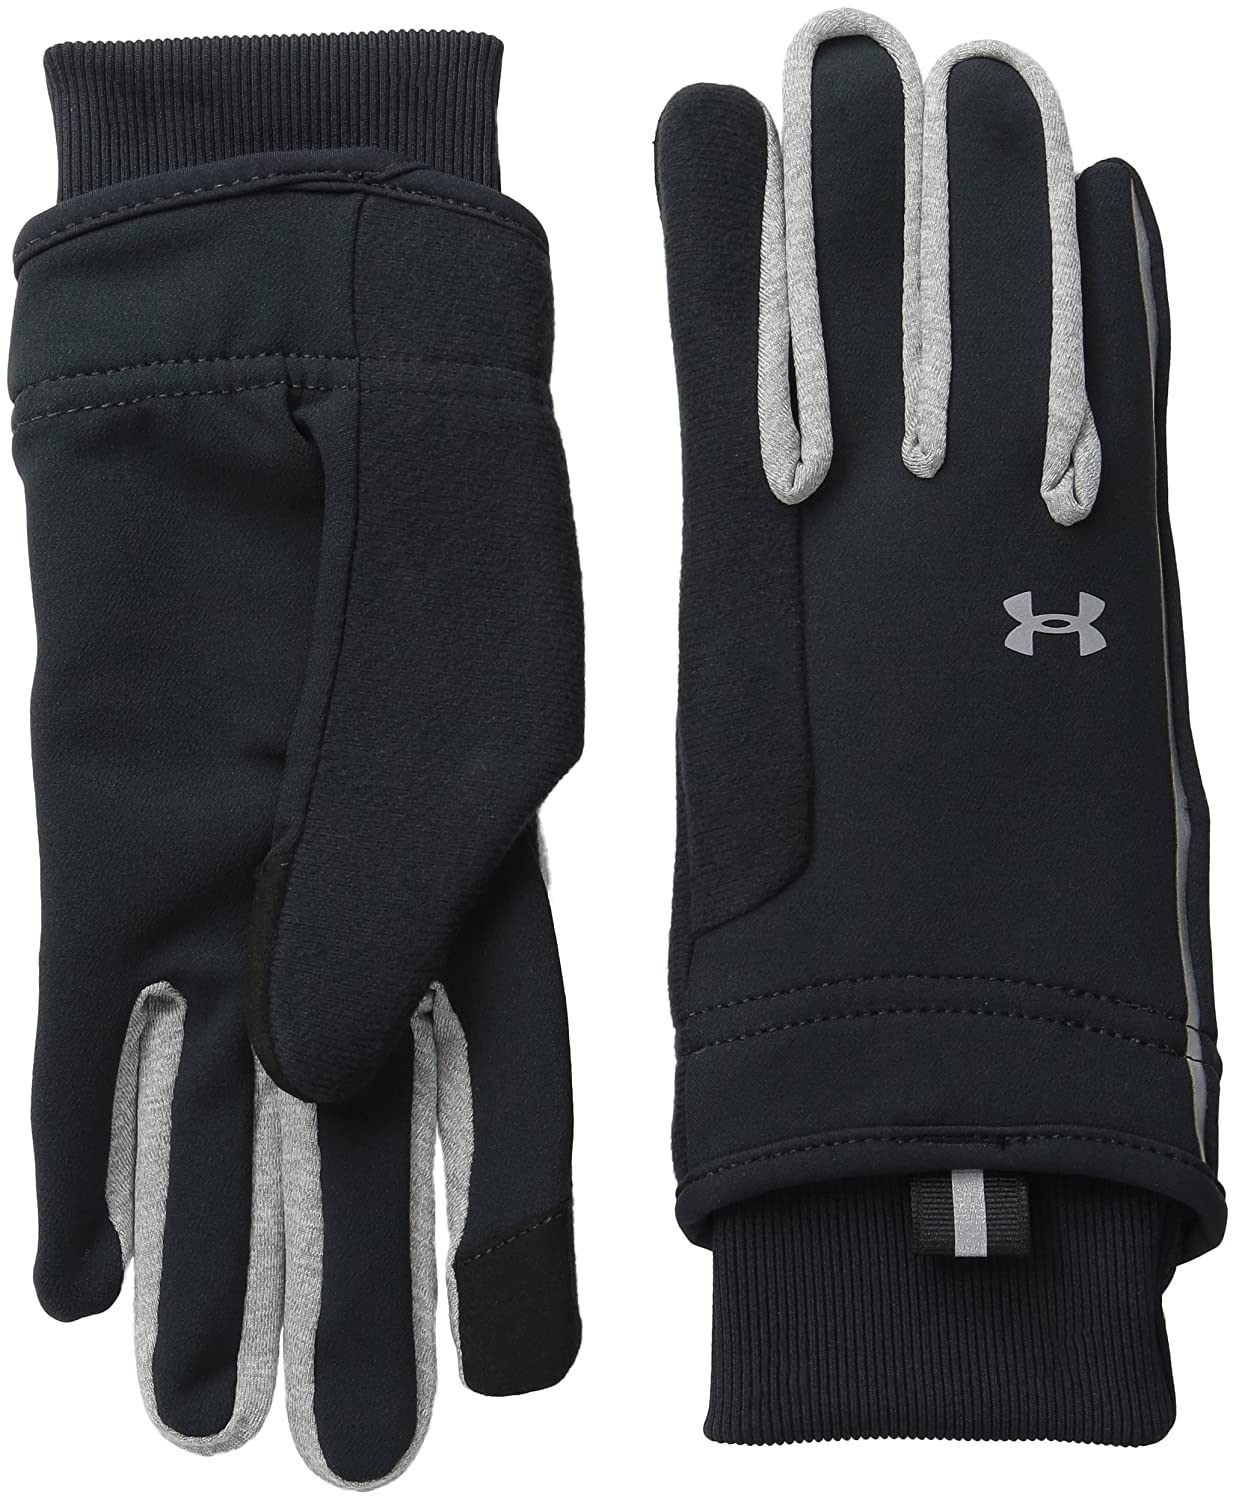 Under Armour Women's No Breaks ColdGear Infrared Softshell Glove Under Armour Accessories 1281895